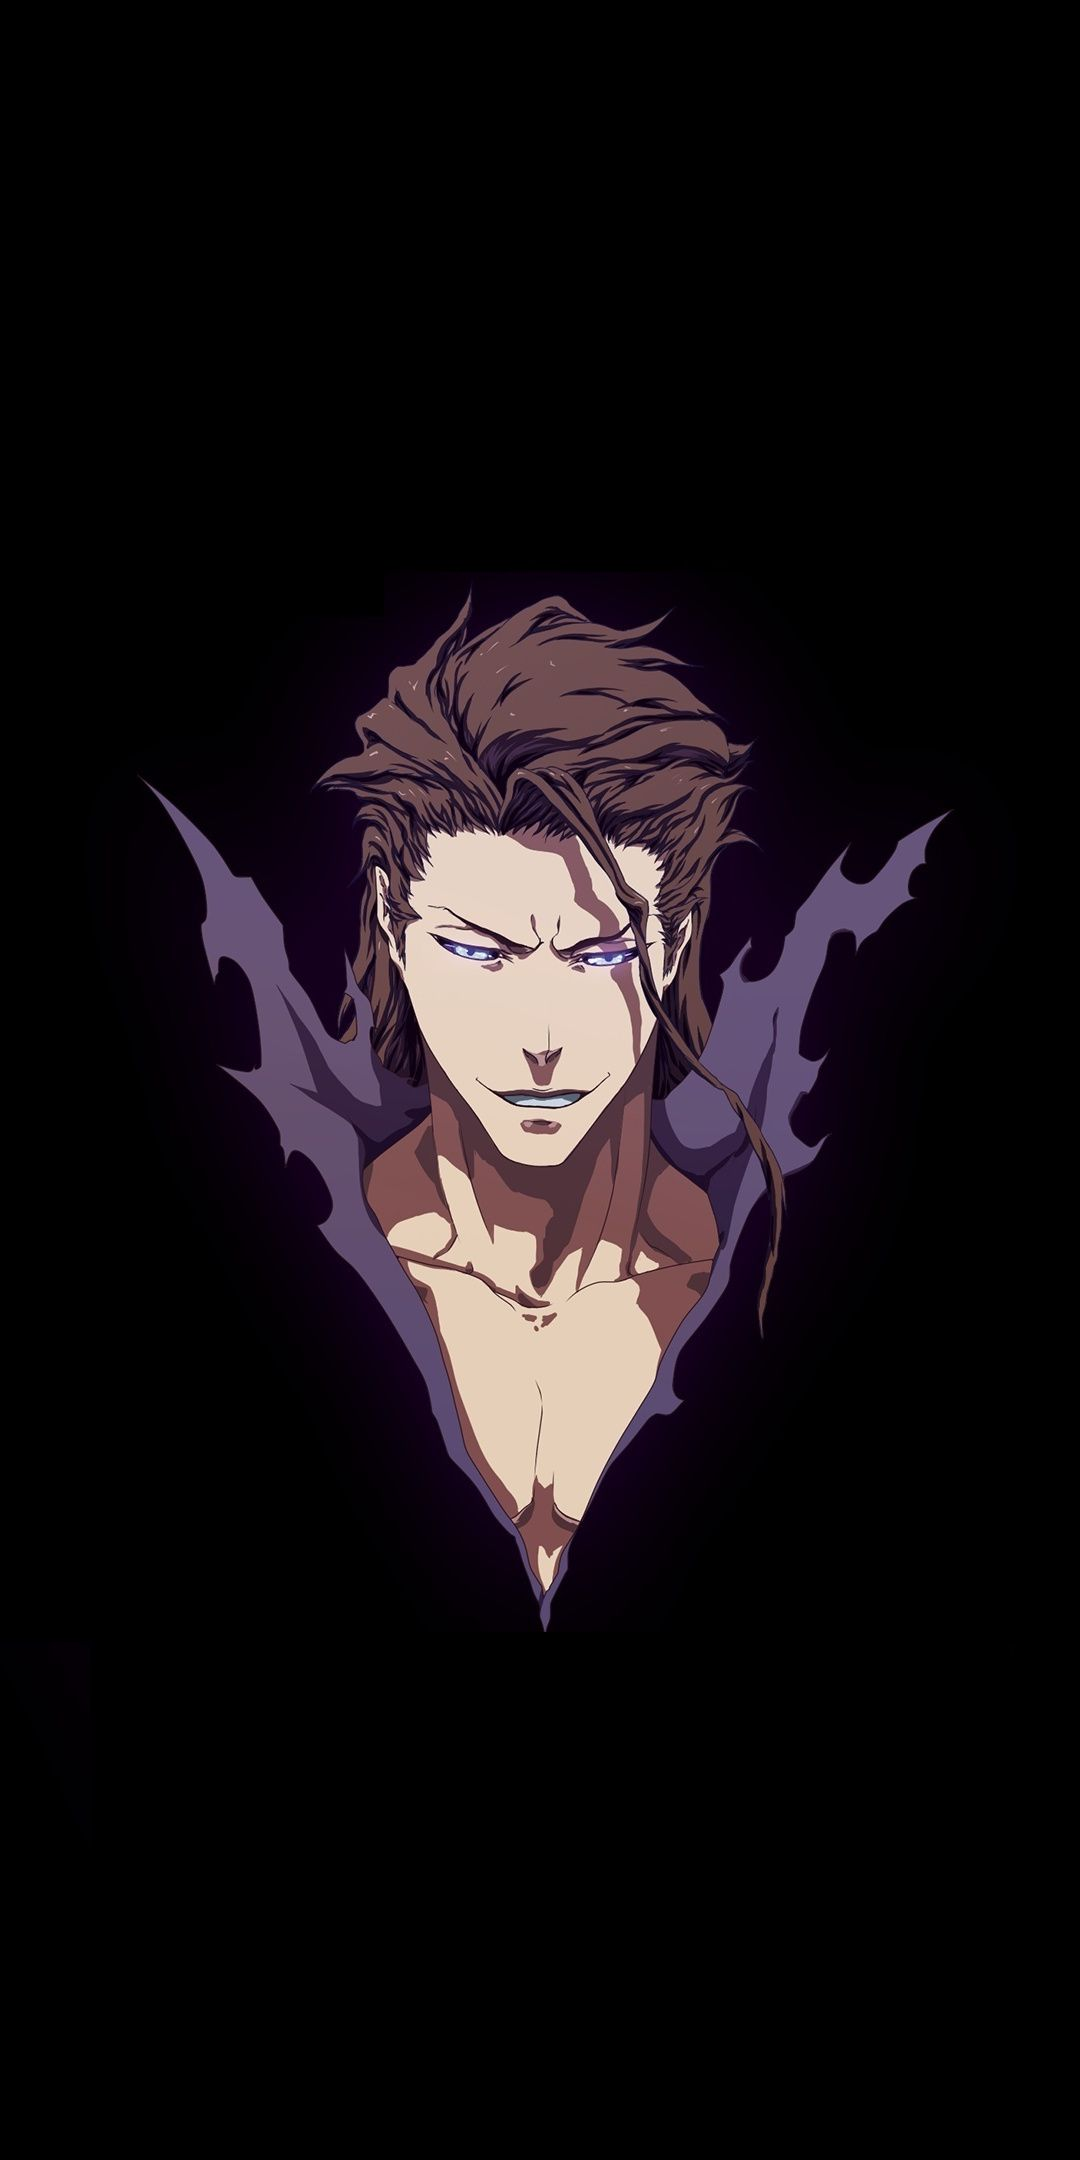 Sōsuke Aizen Bleach Minimal Artwork 1080x2160 Wallpaper